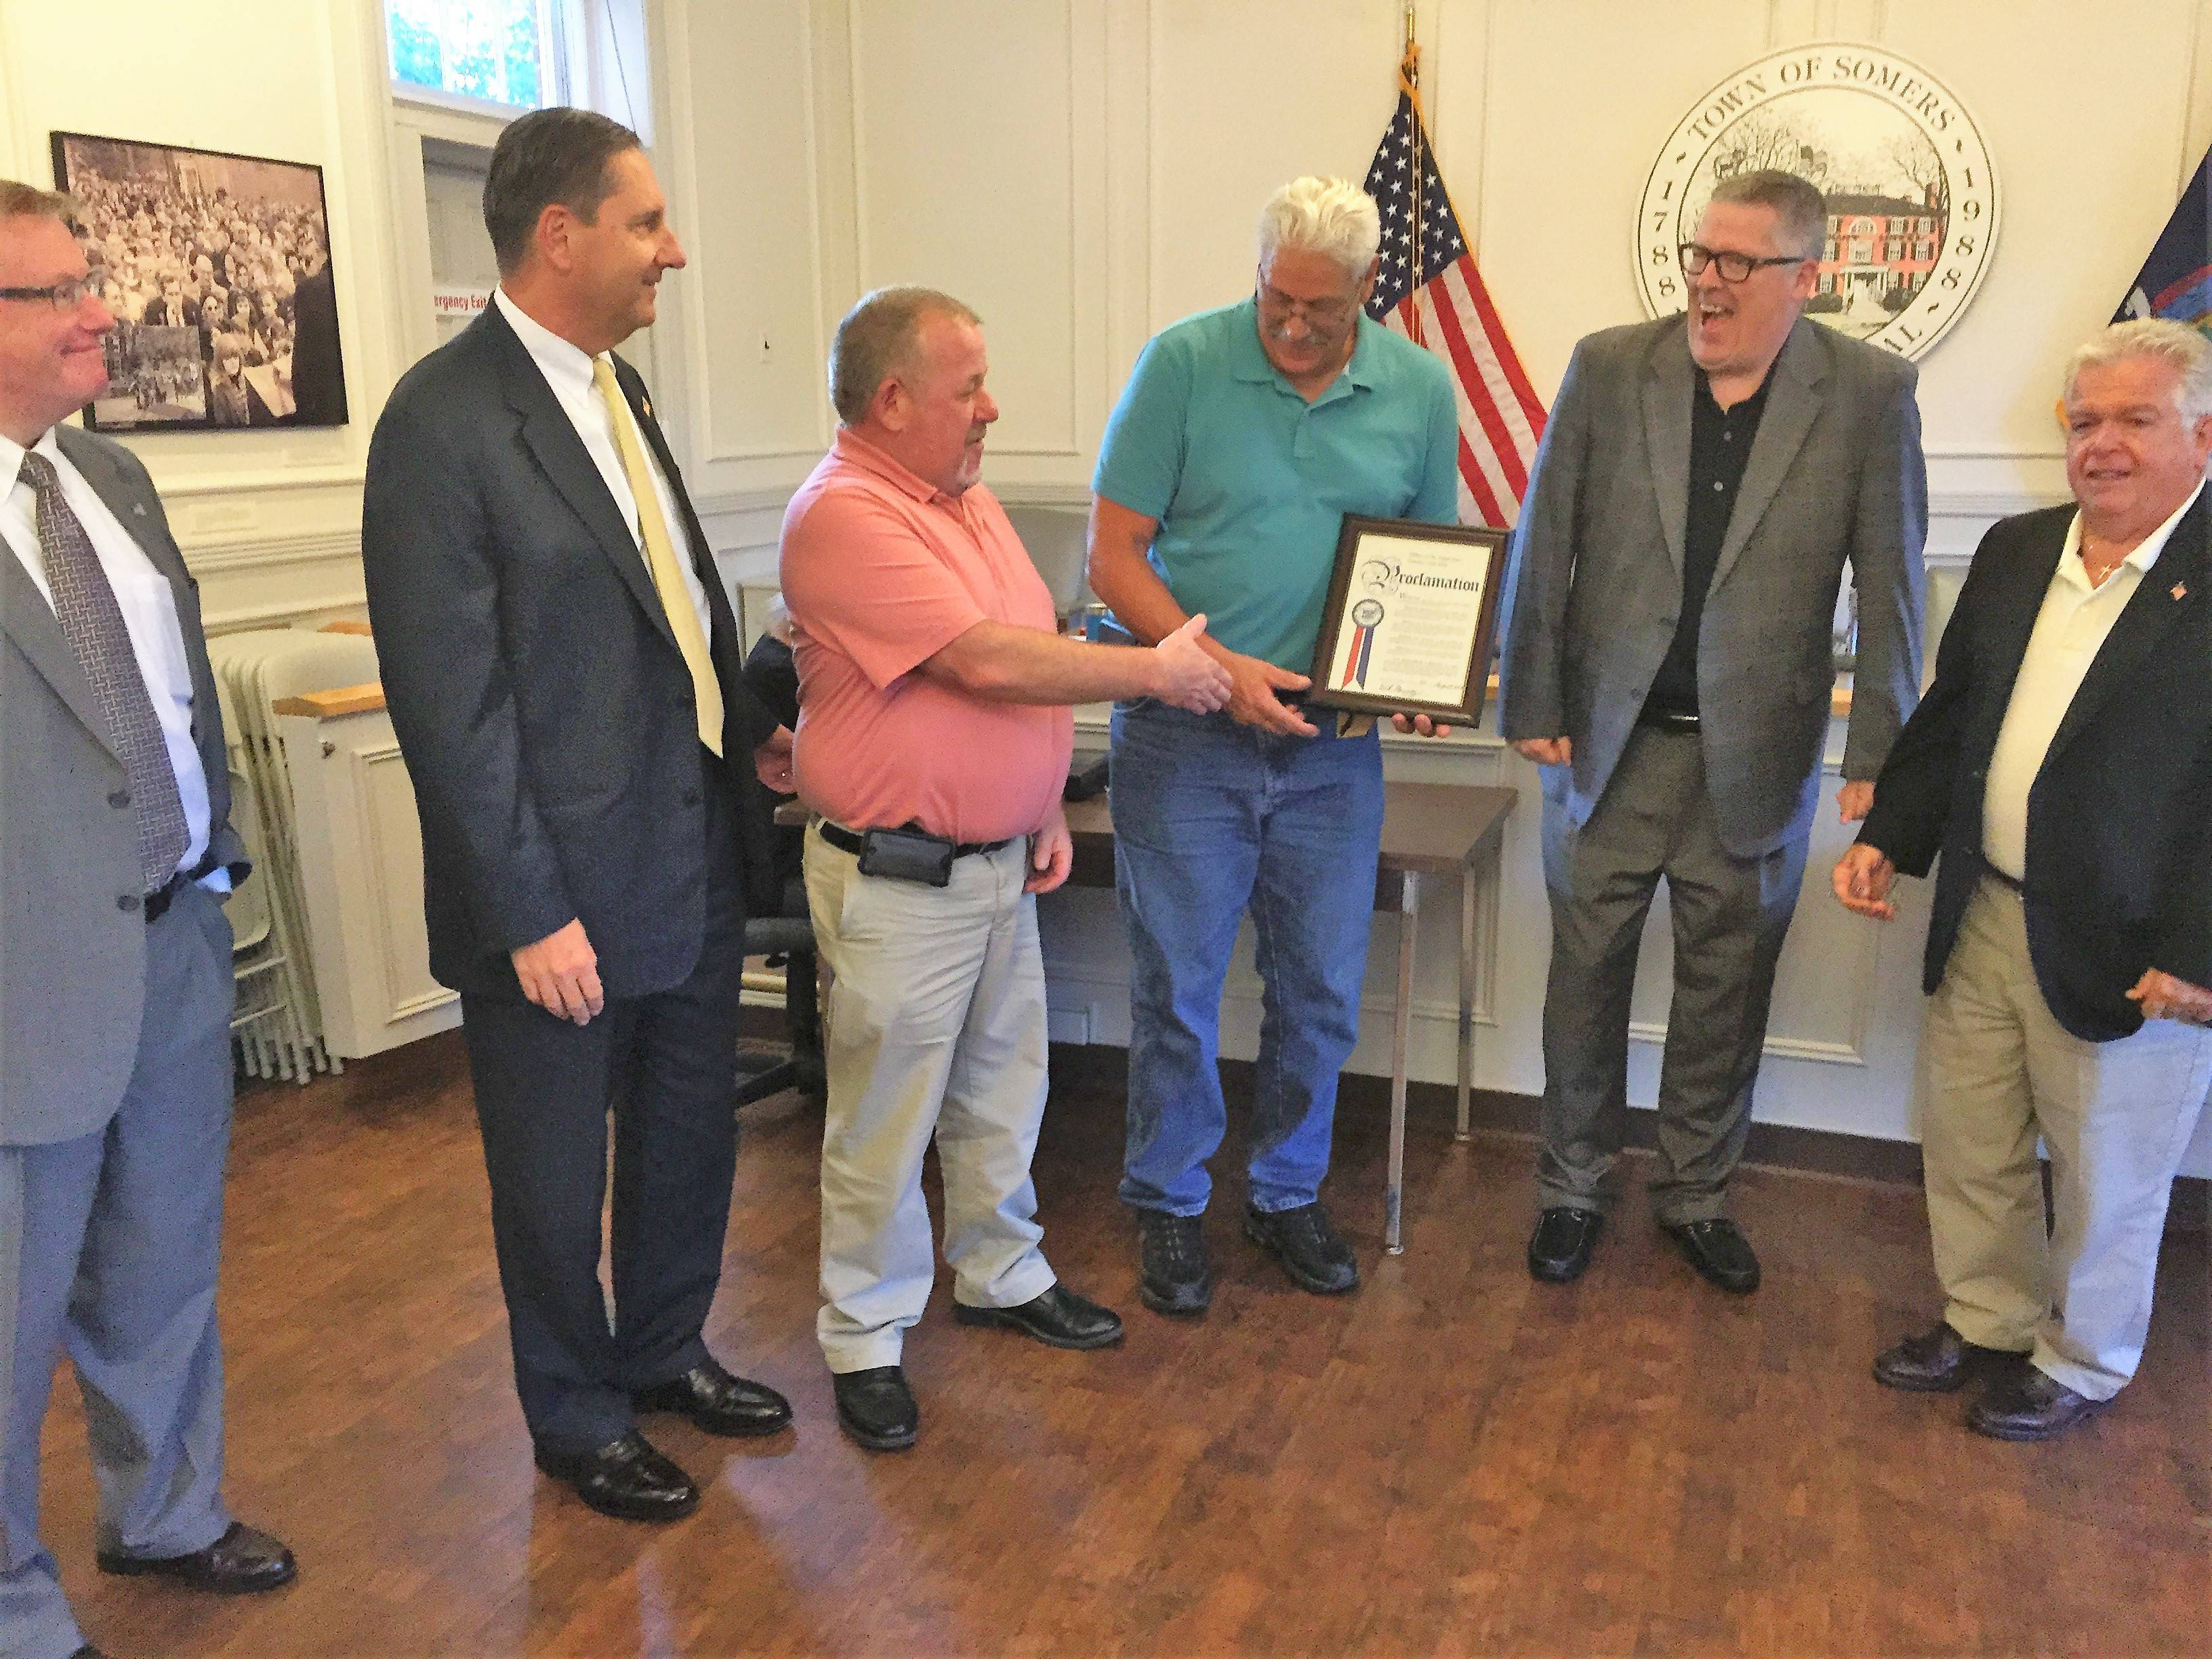 Outgoing Deputy Louis Noto Honored